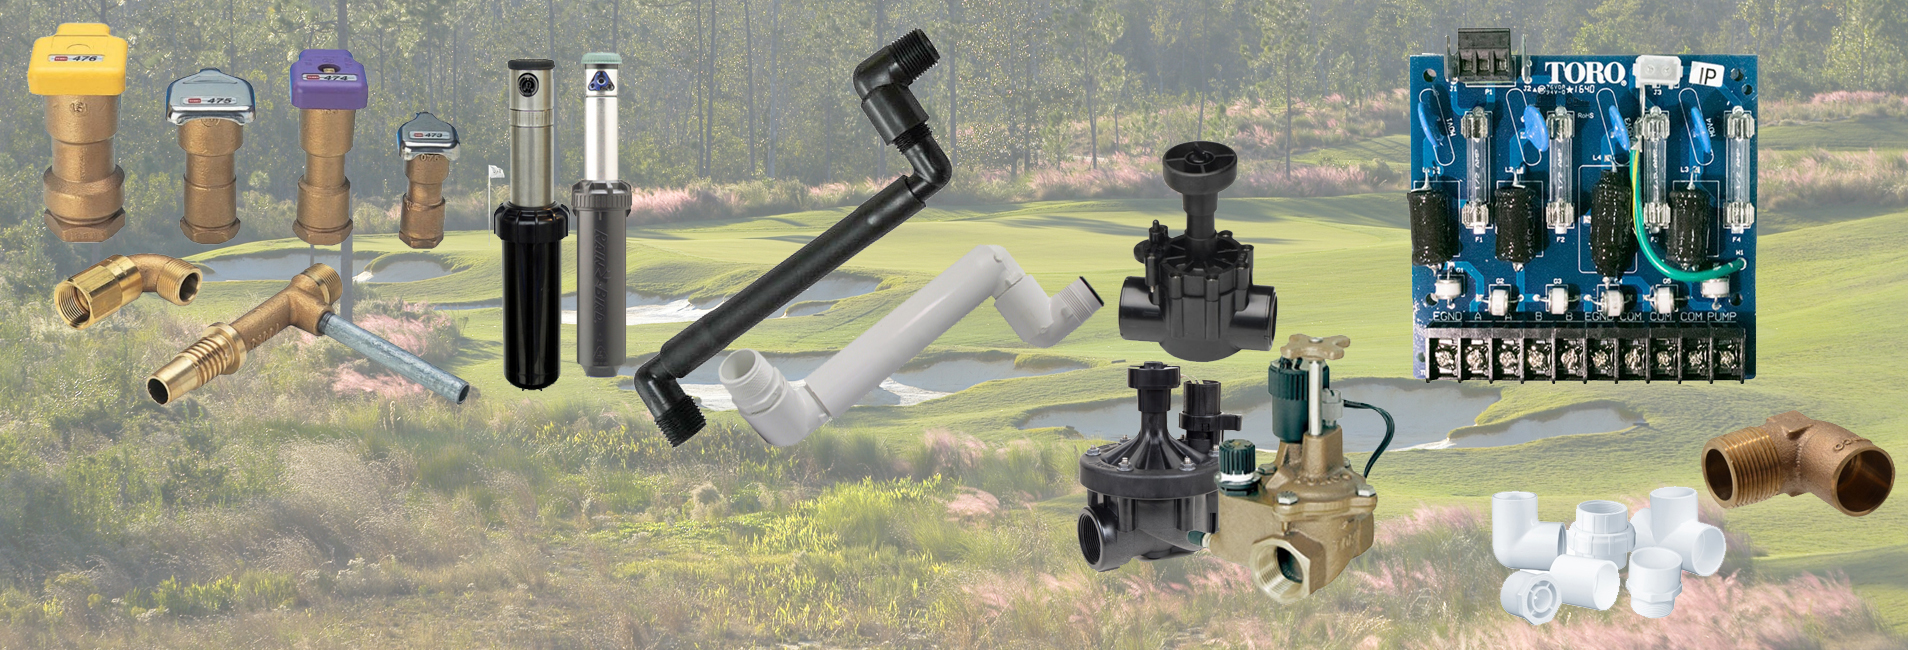 Irrigation Parts and Services - Jerry Pate Company